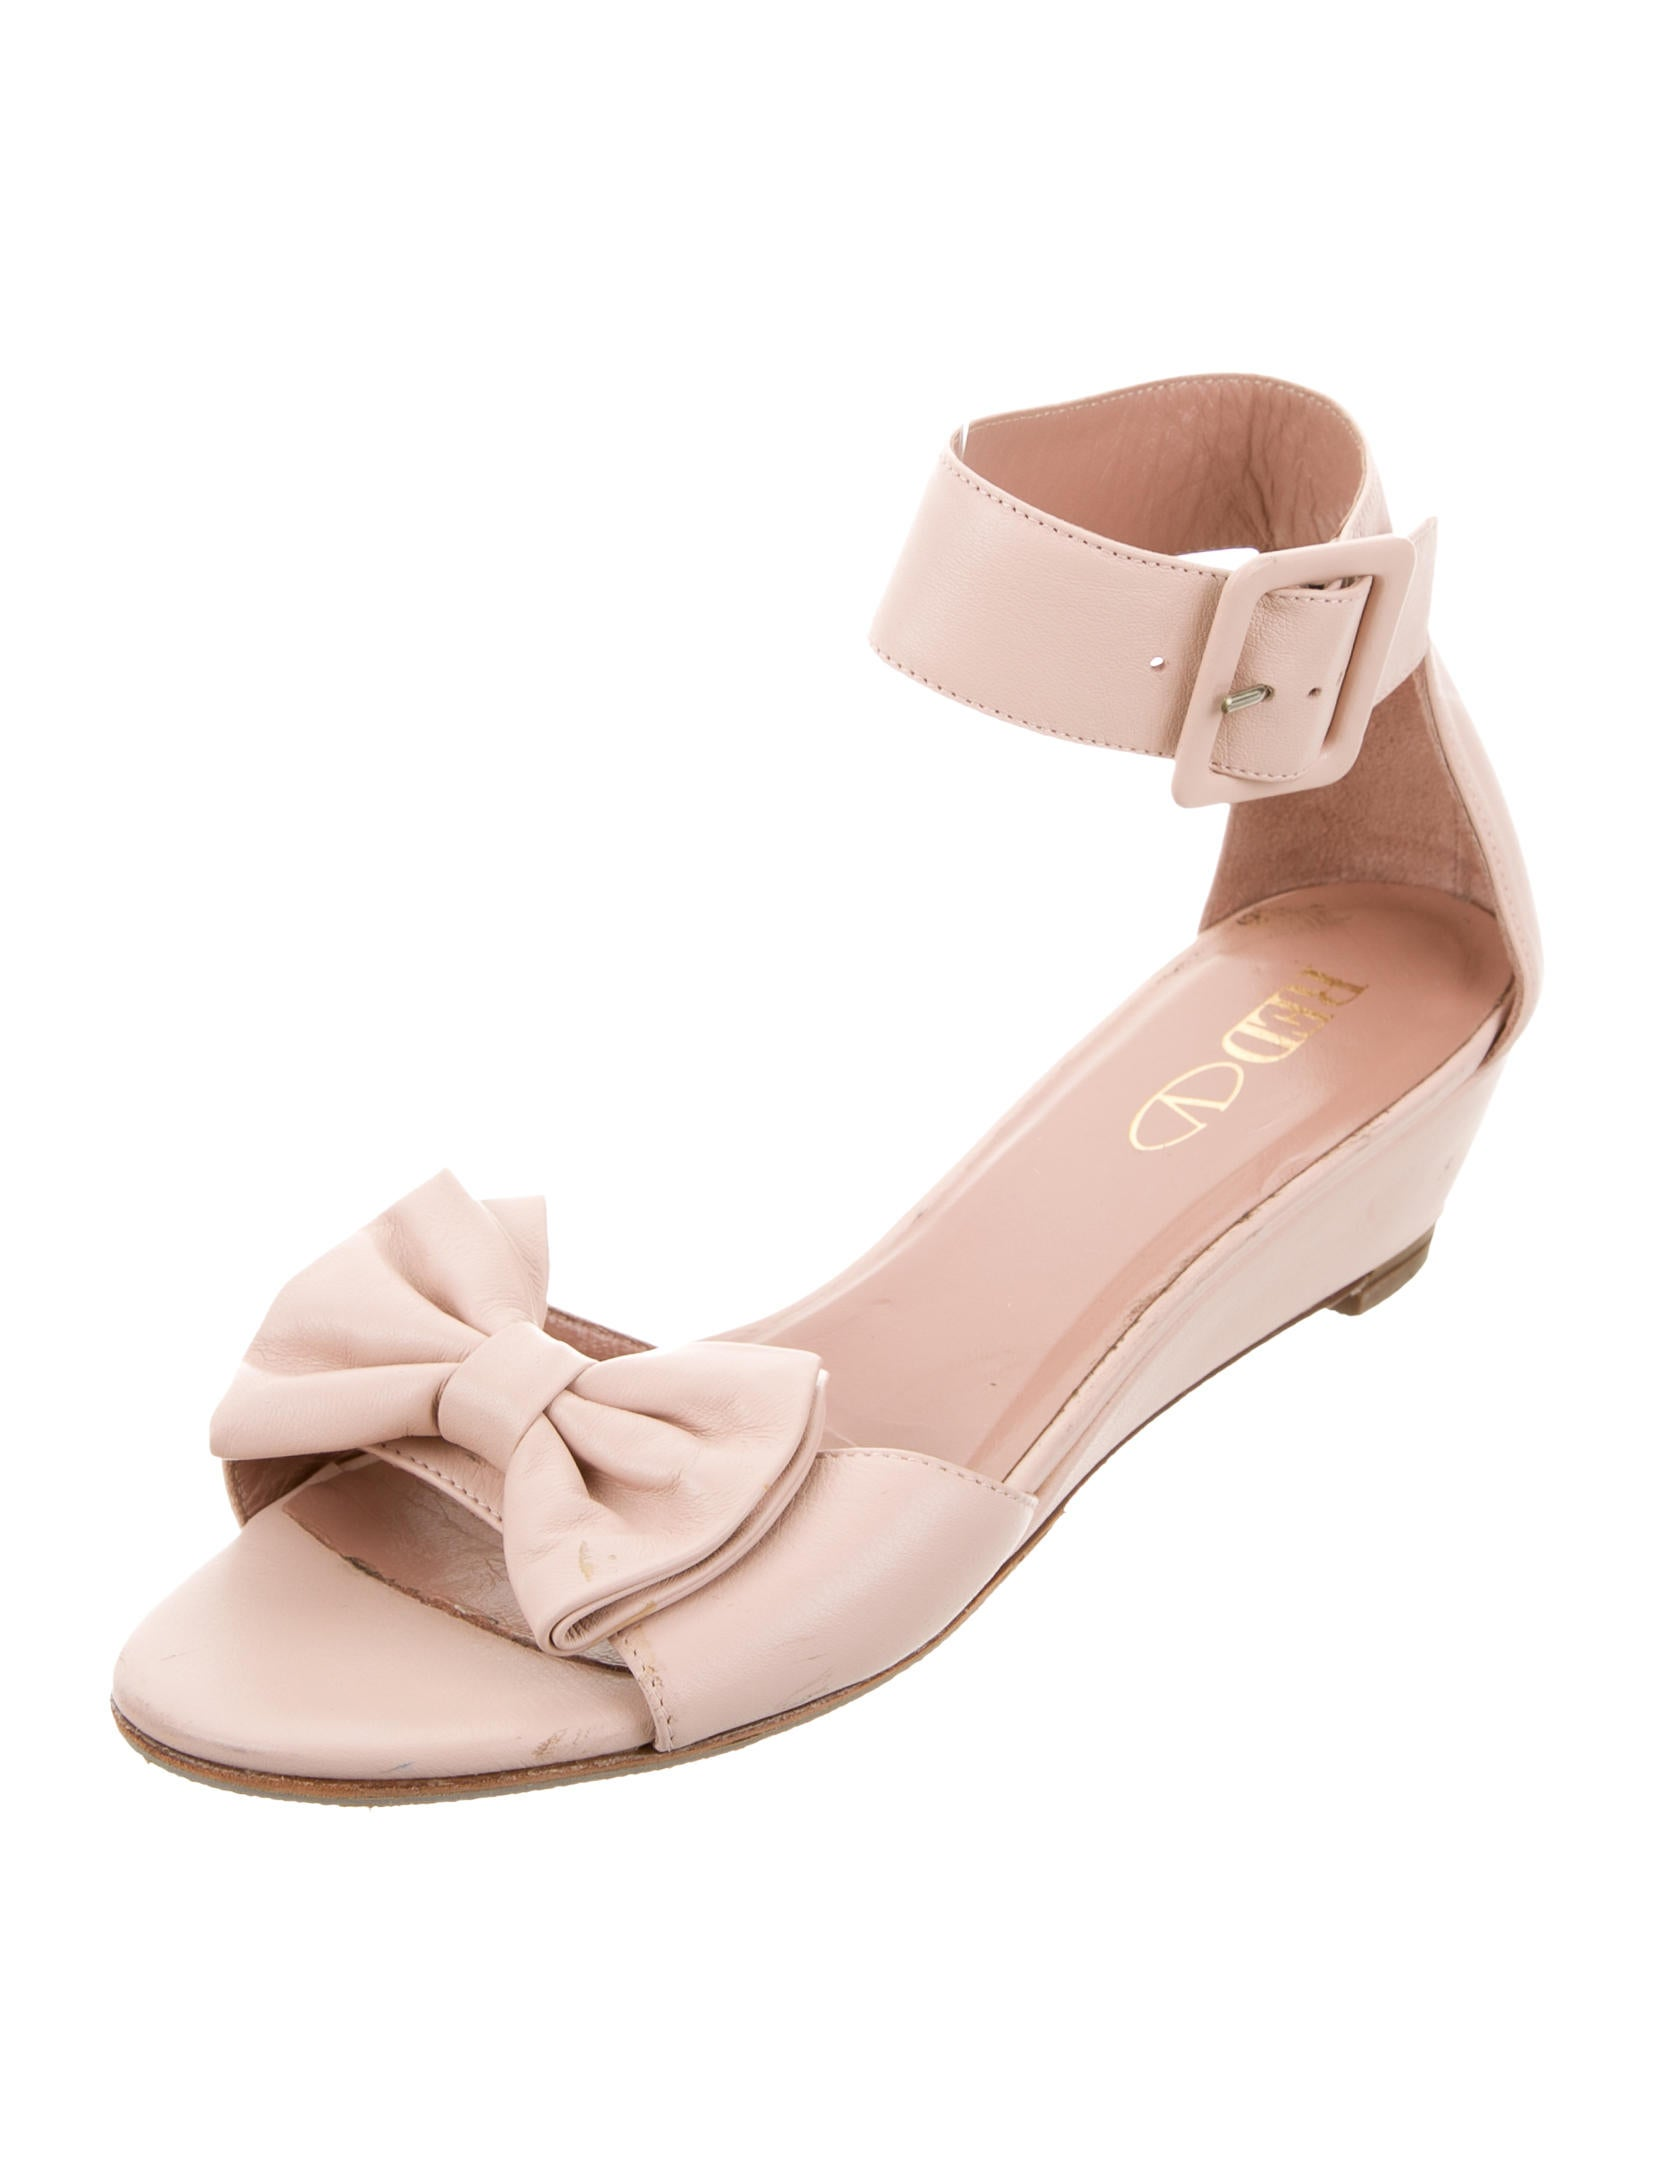 valentino bow wedge sandals shoes wre26271 the